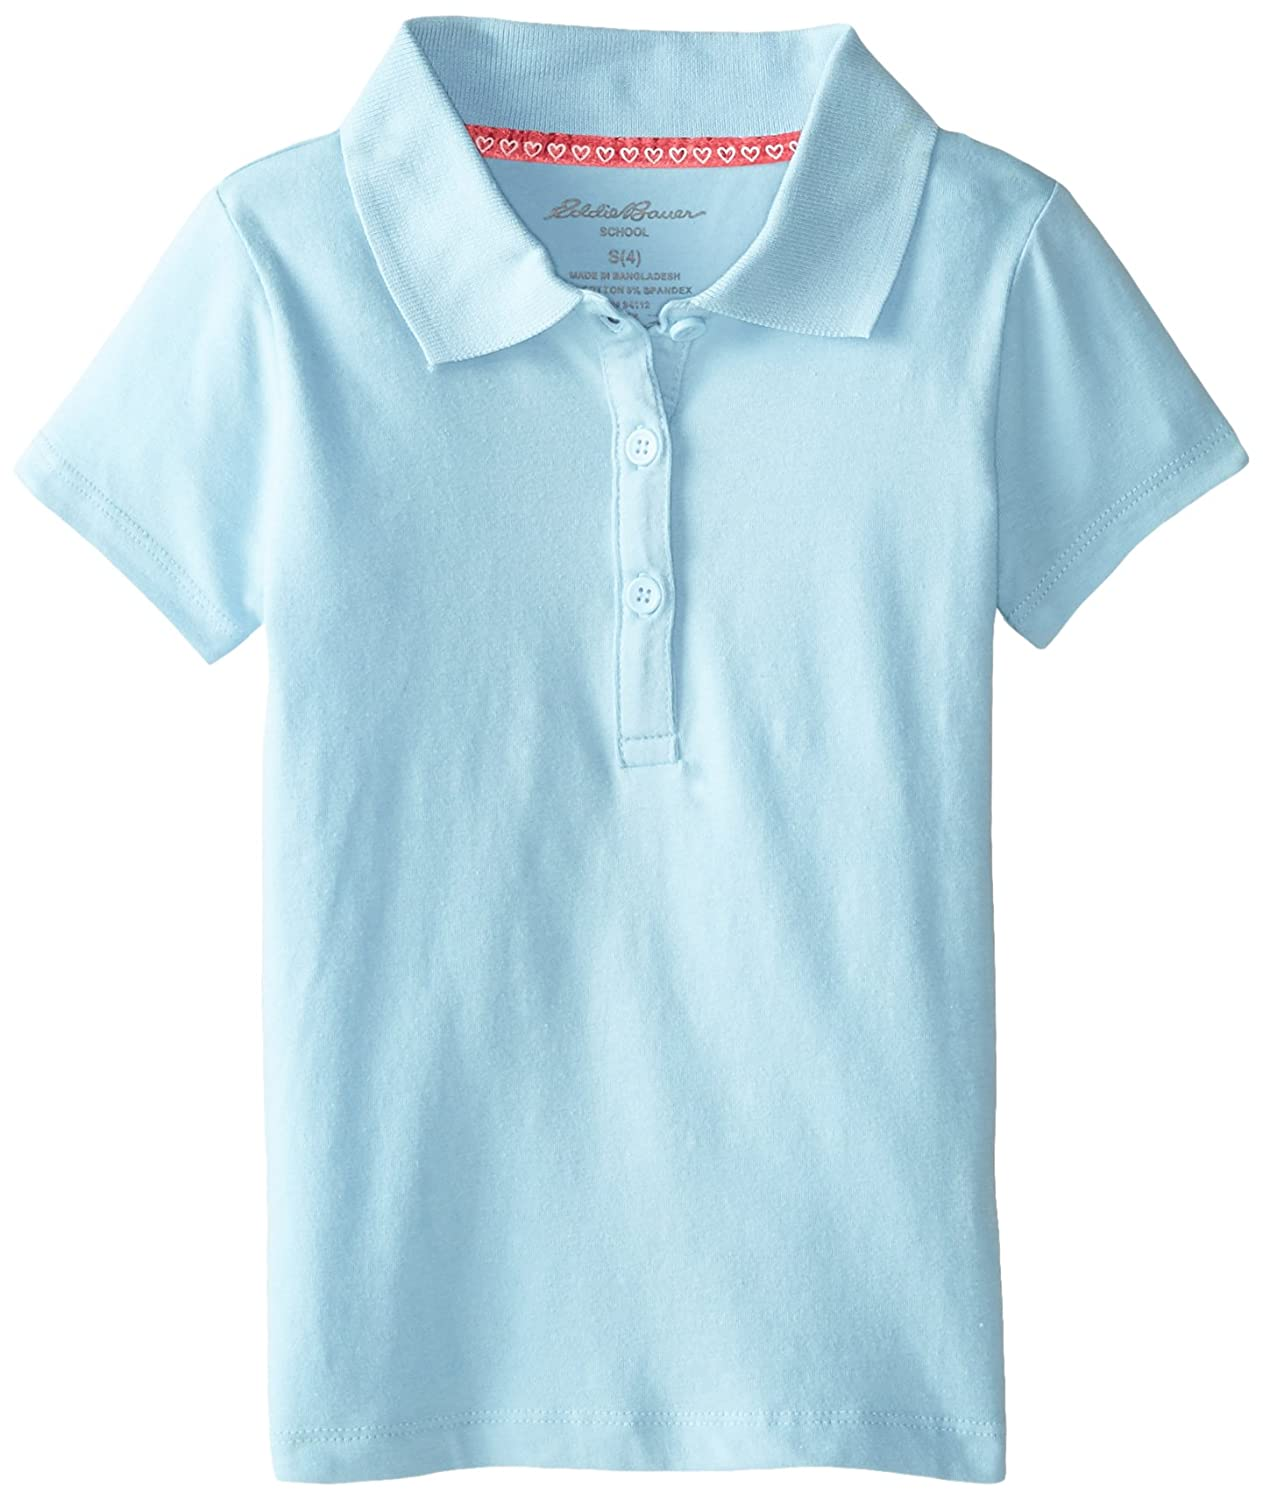 Eddie Bauer Girls' Polo Shirt (More Styles Available) IB95